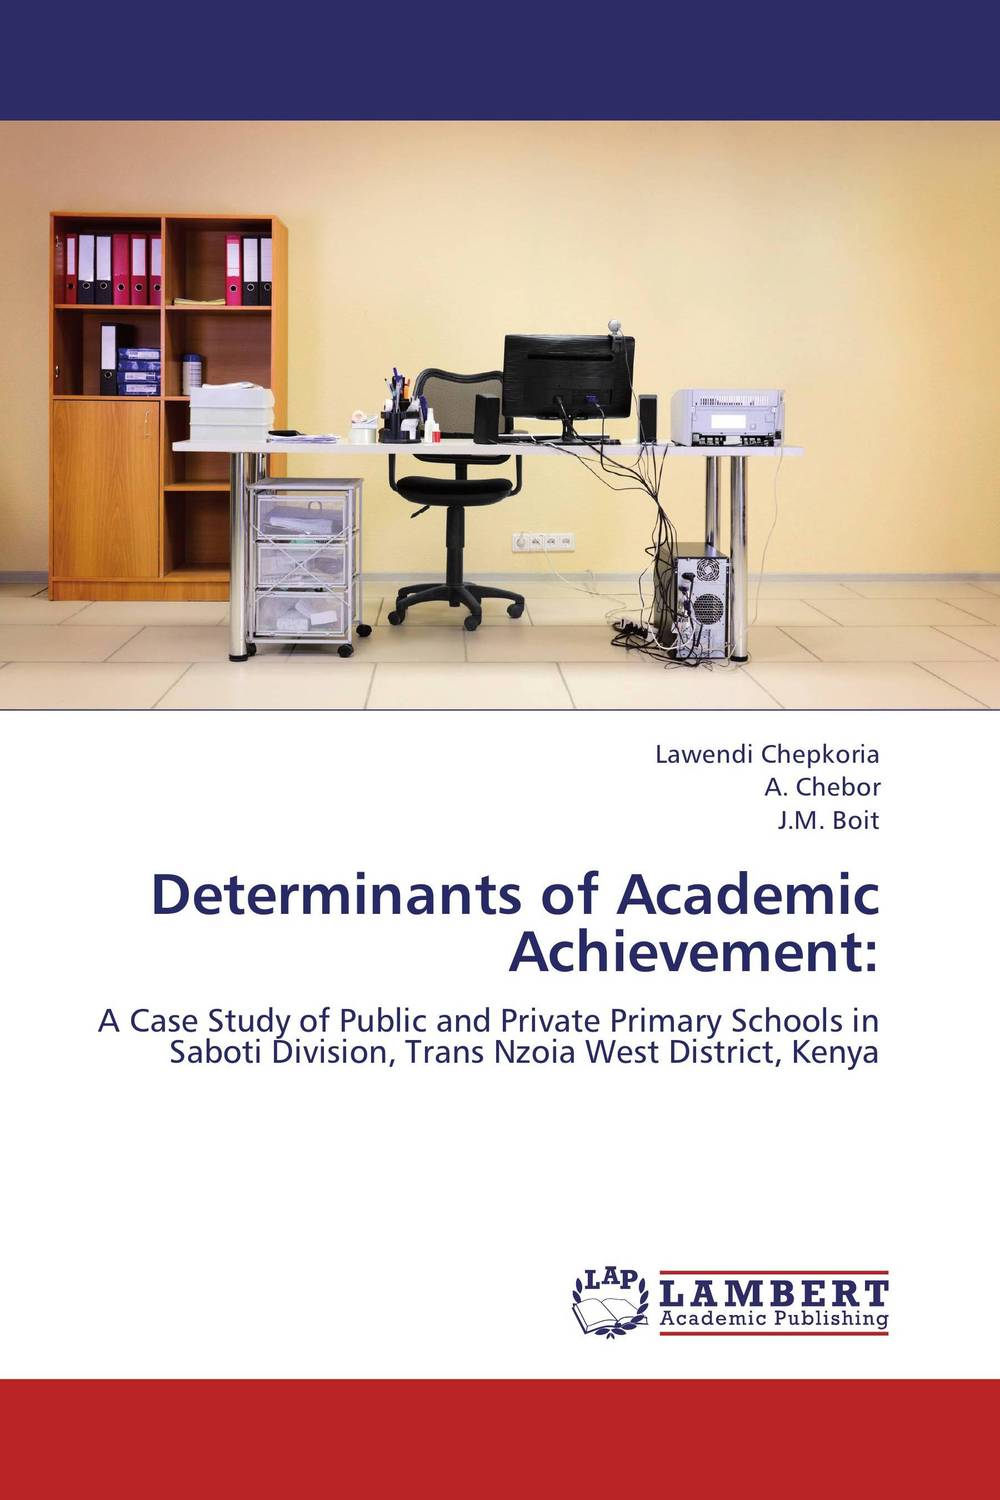 Determinants of Academic Achievement: